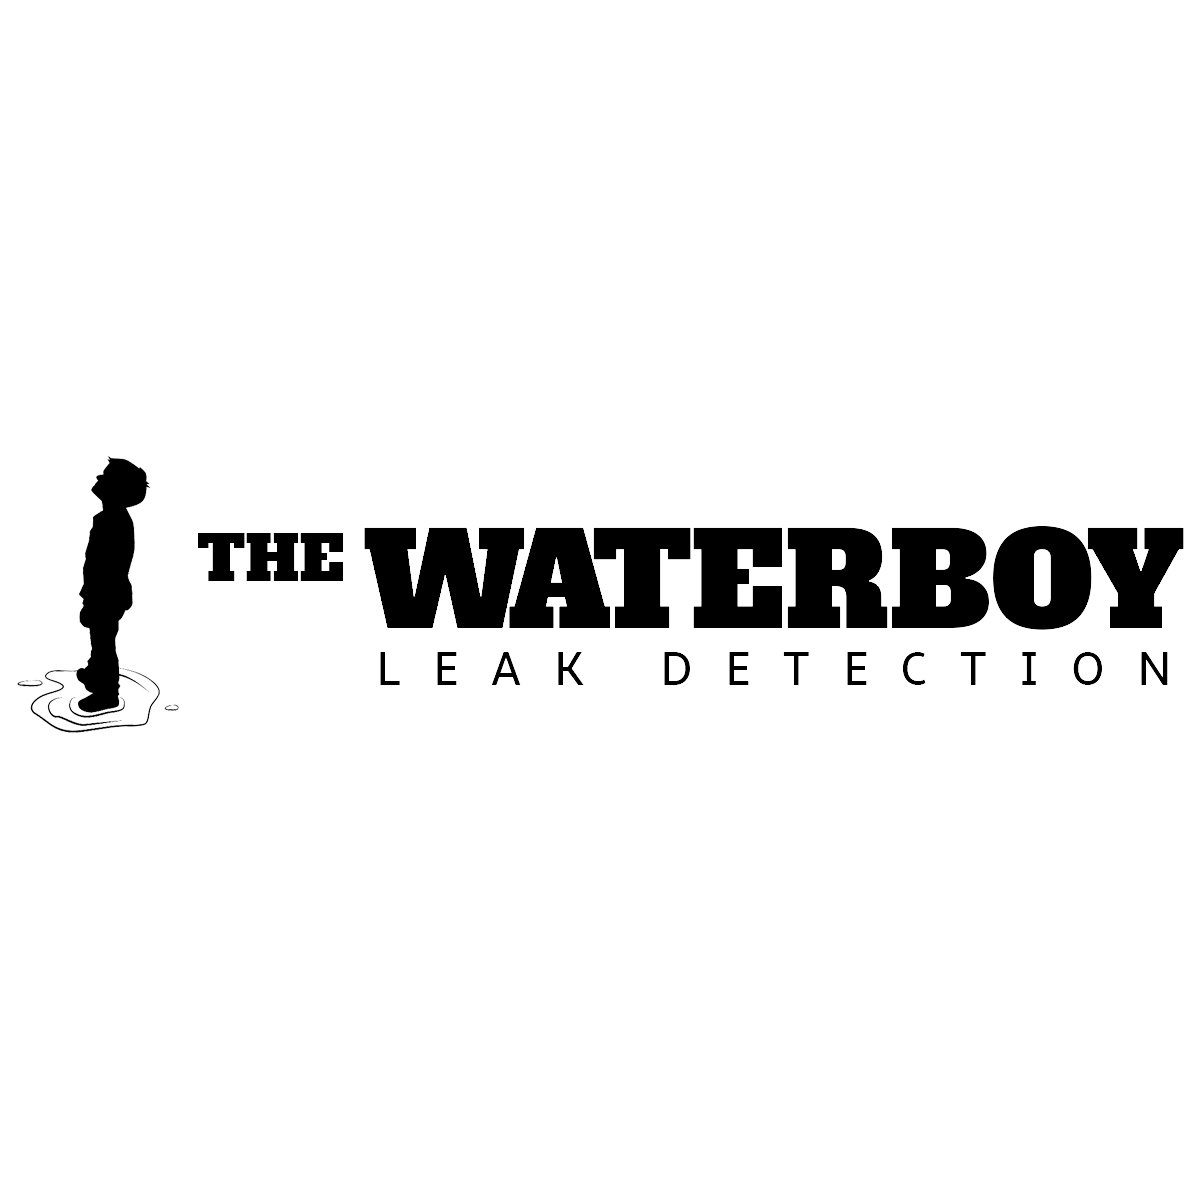 The Waterboy - Leak Detection